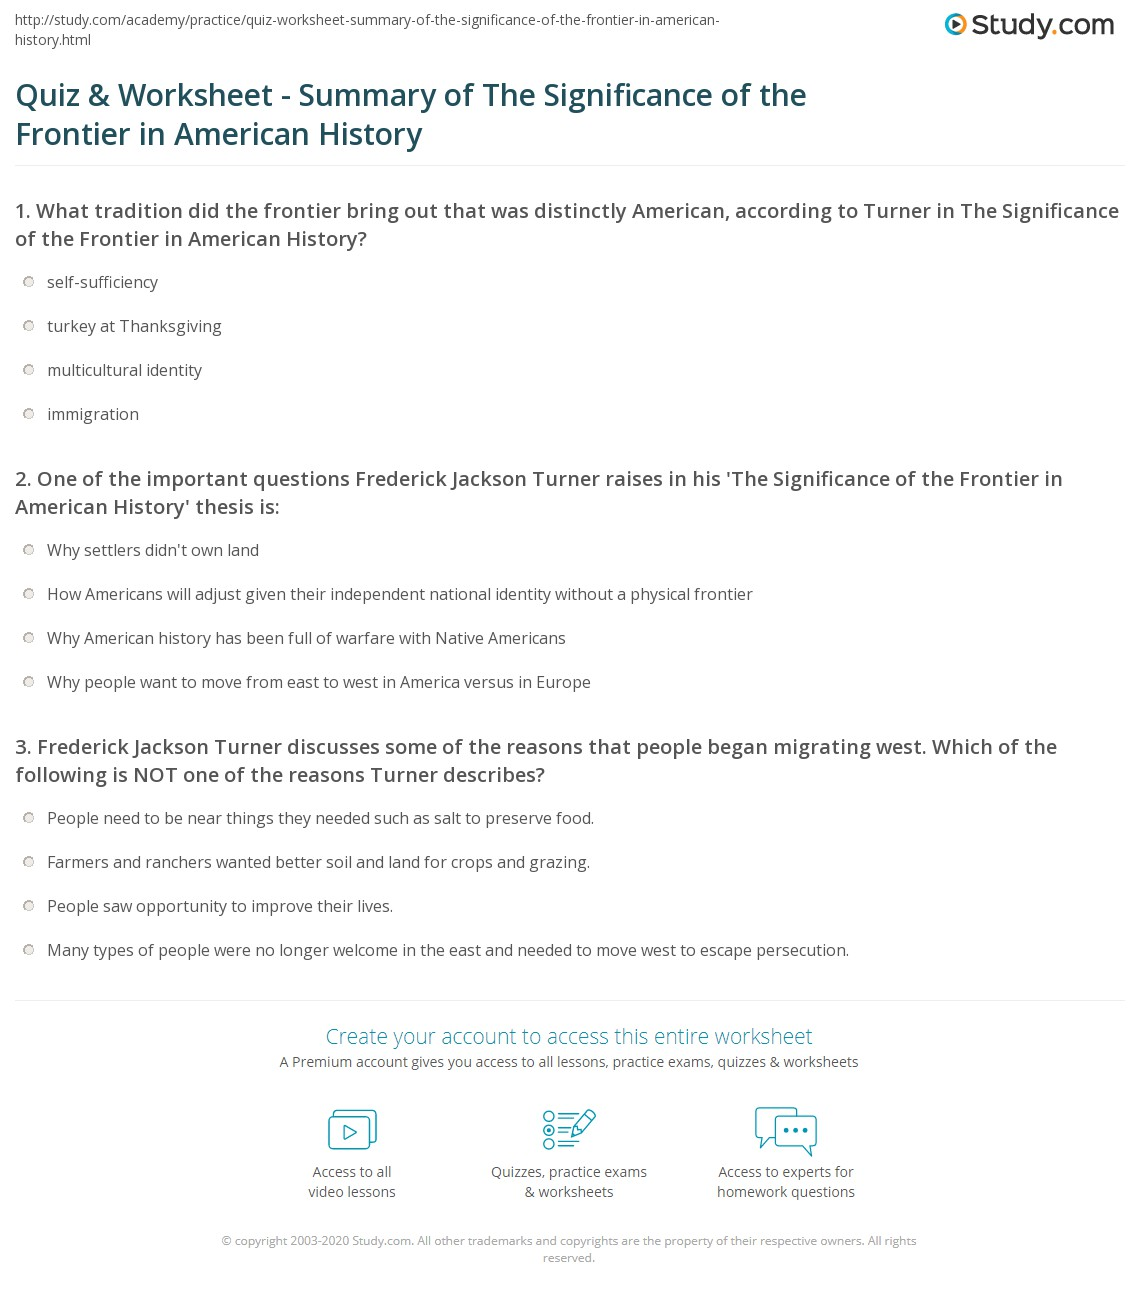 quiz worksheet summary of the significance of the frontier in one of the important questions frederick jackson turner raises in his the significance of the frontier in american history thesis is